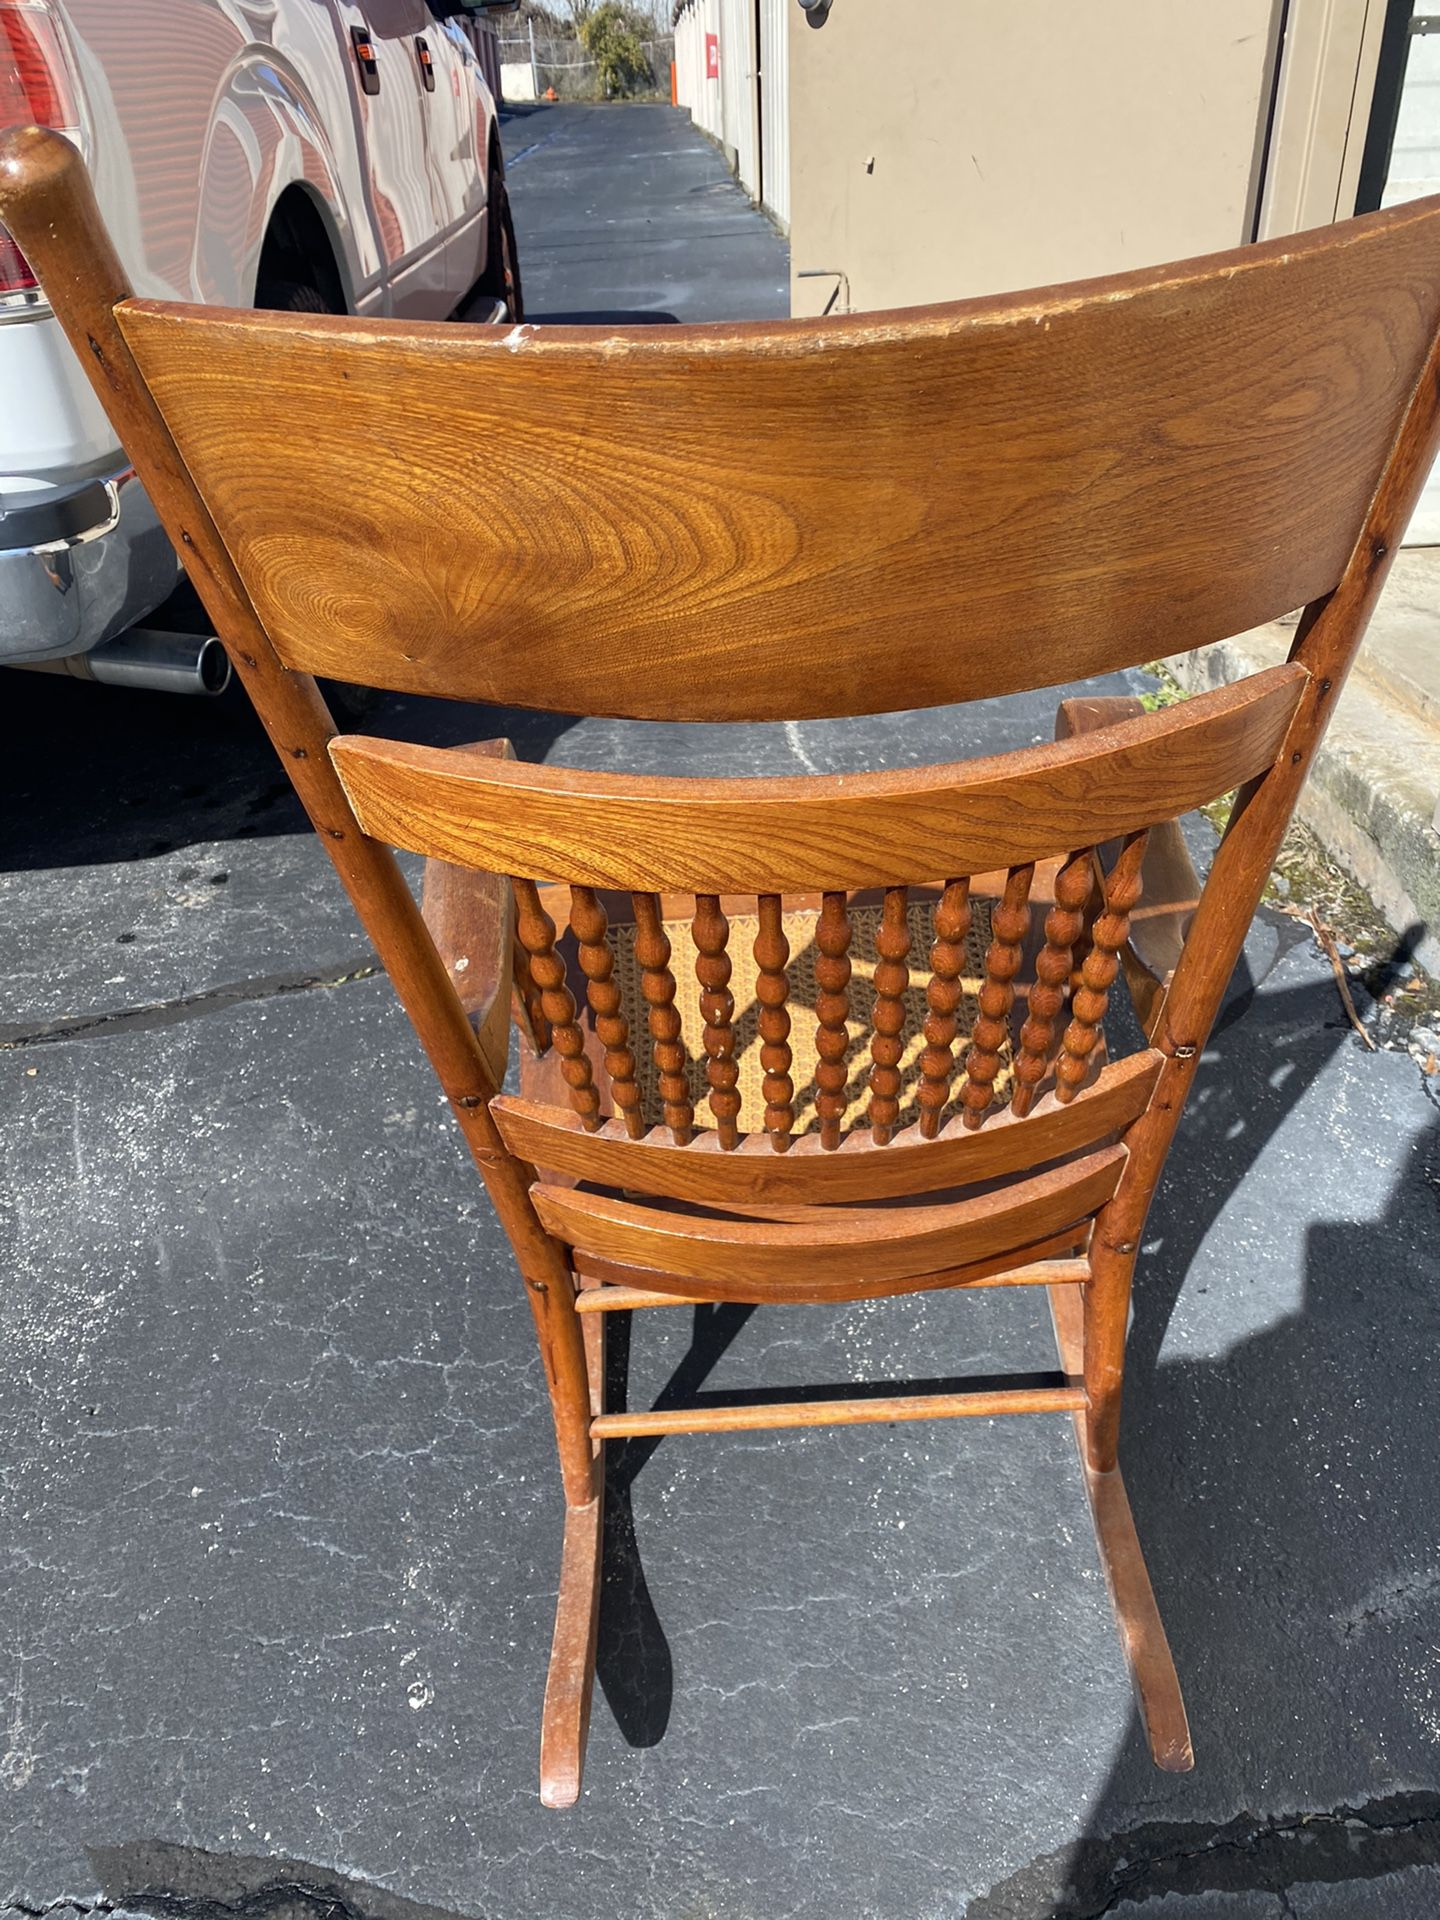 Vintage Wood And Cane Rocking Chair From 1940's